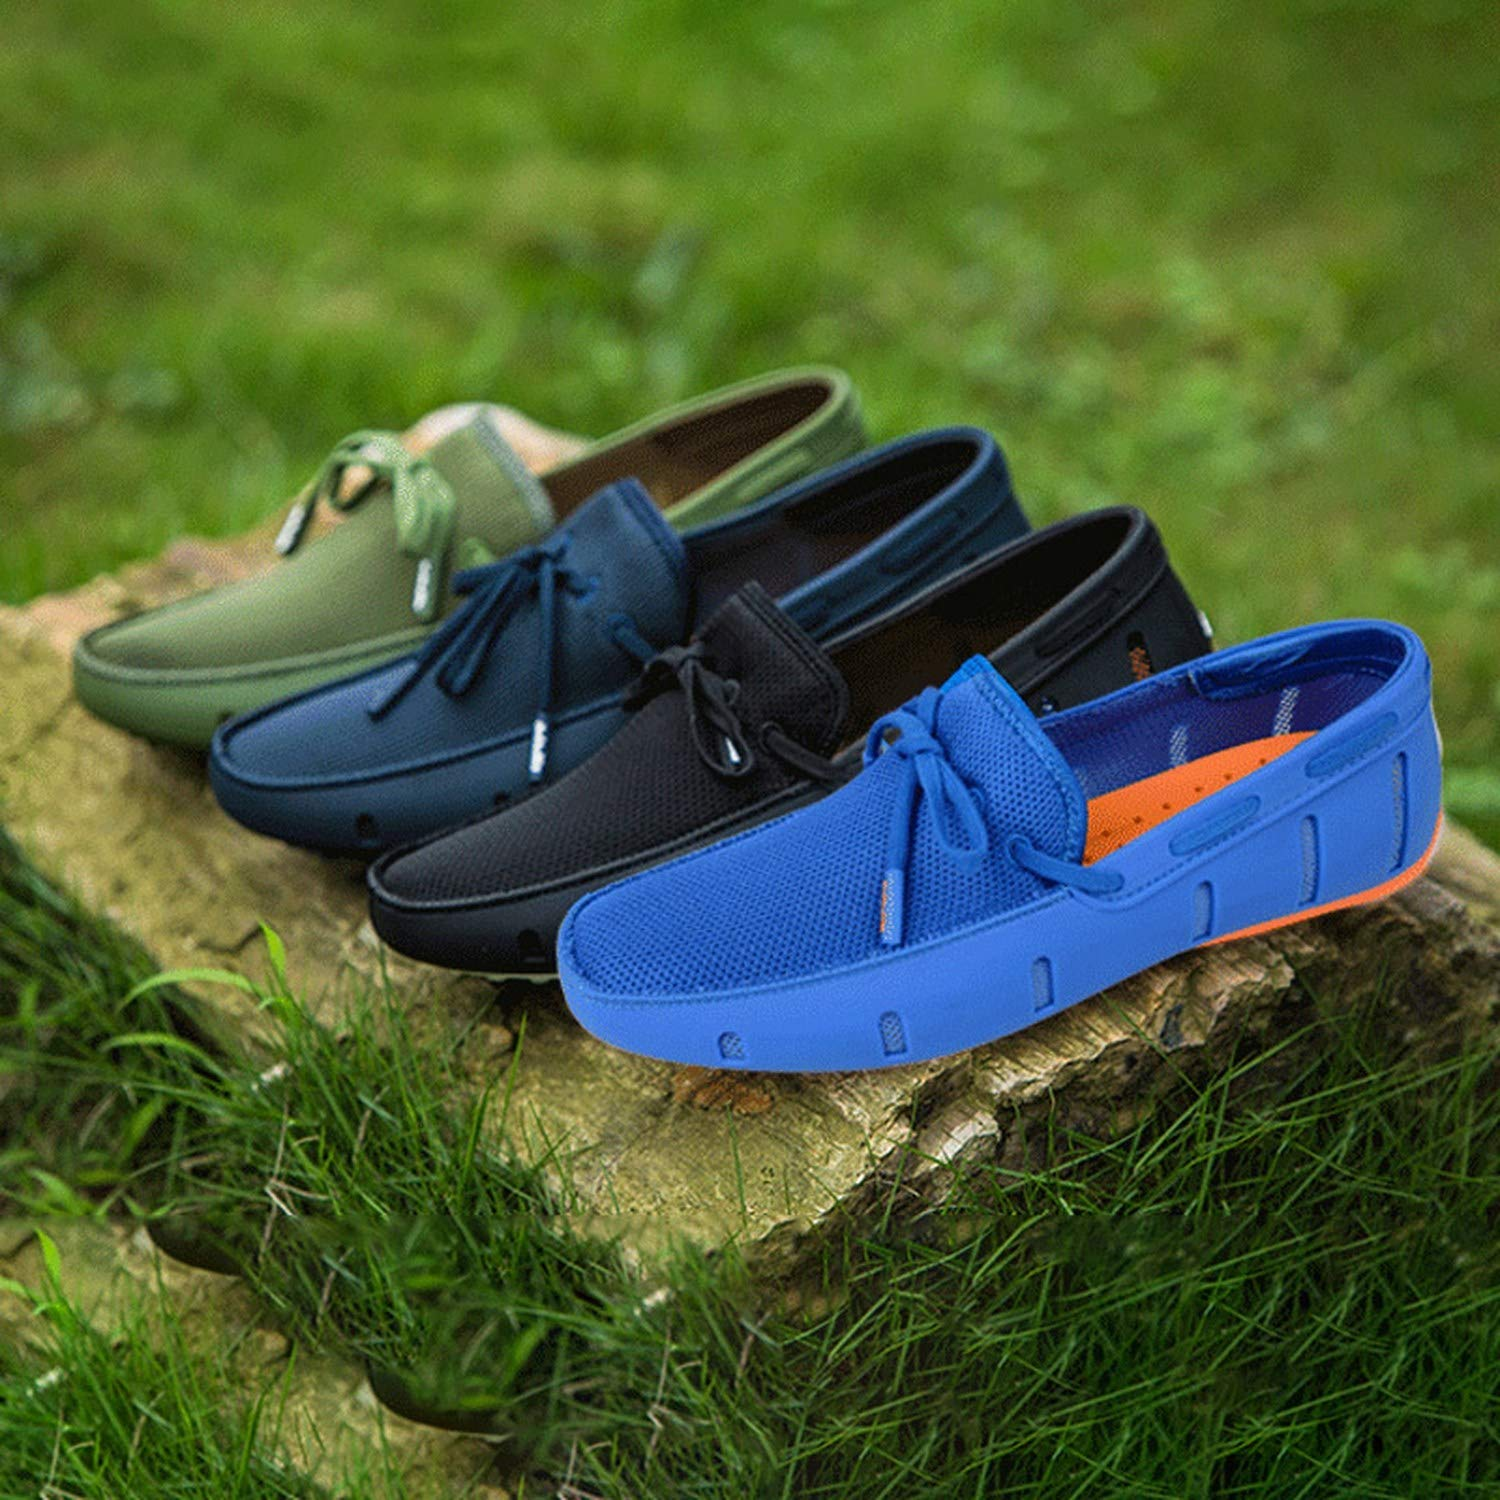 crazy-shop Breathable Slip-on Summer Shoes Men Casual Comfortable Upstream Walking Water Quick Drying Sneaker Shoes,Blue 4,39